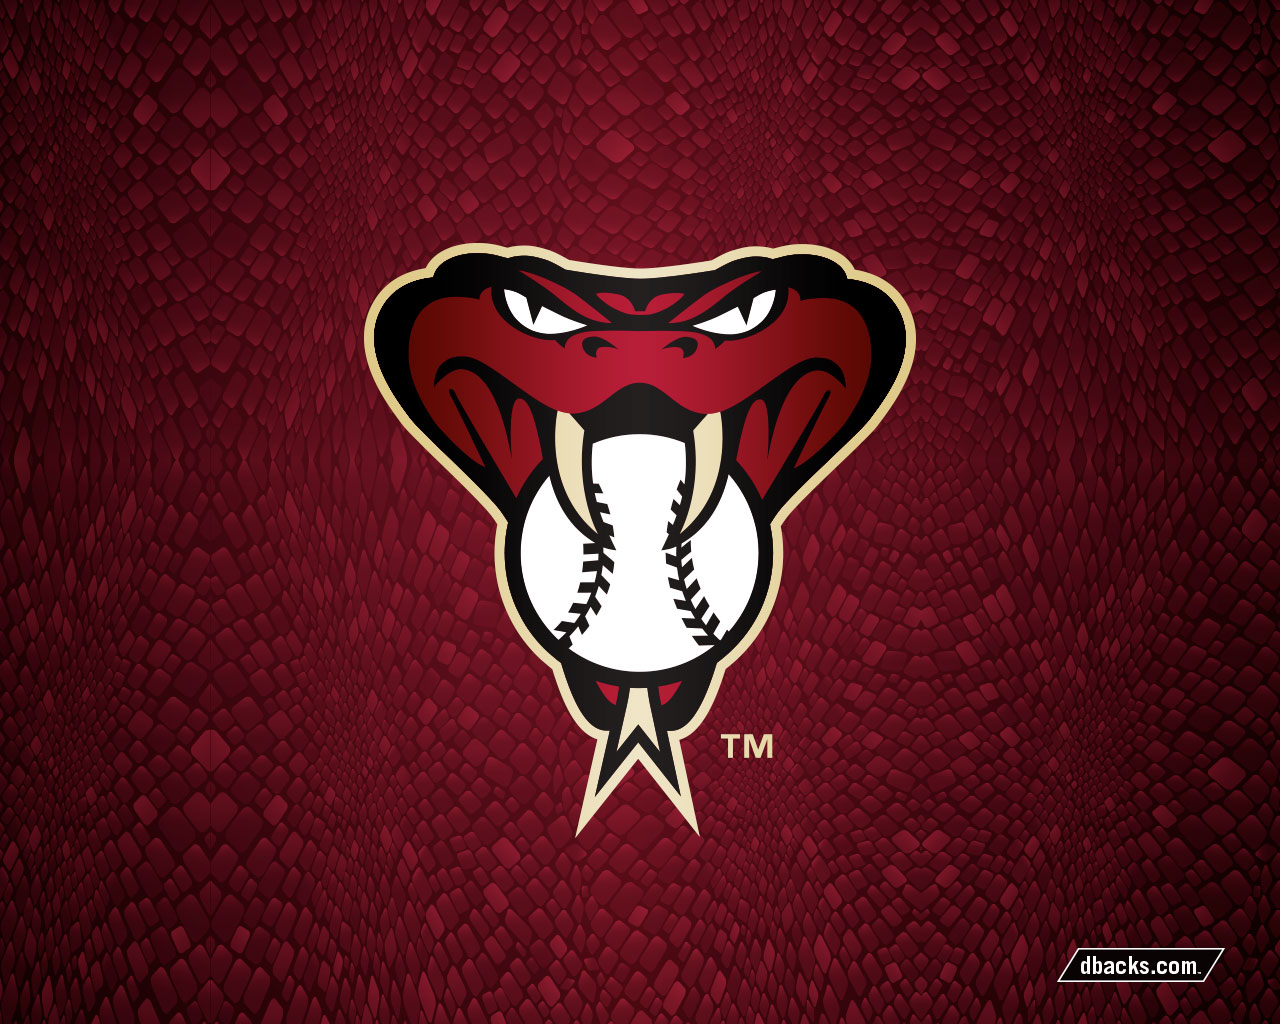 1280x1024 - Arizona Diamondbacks Wallpapers 3